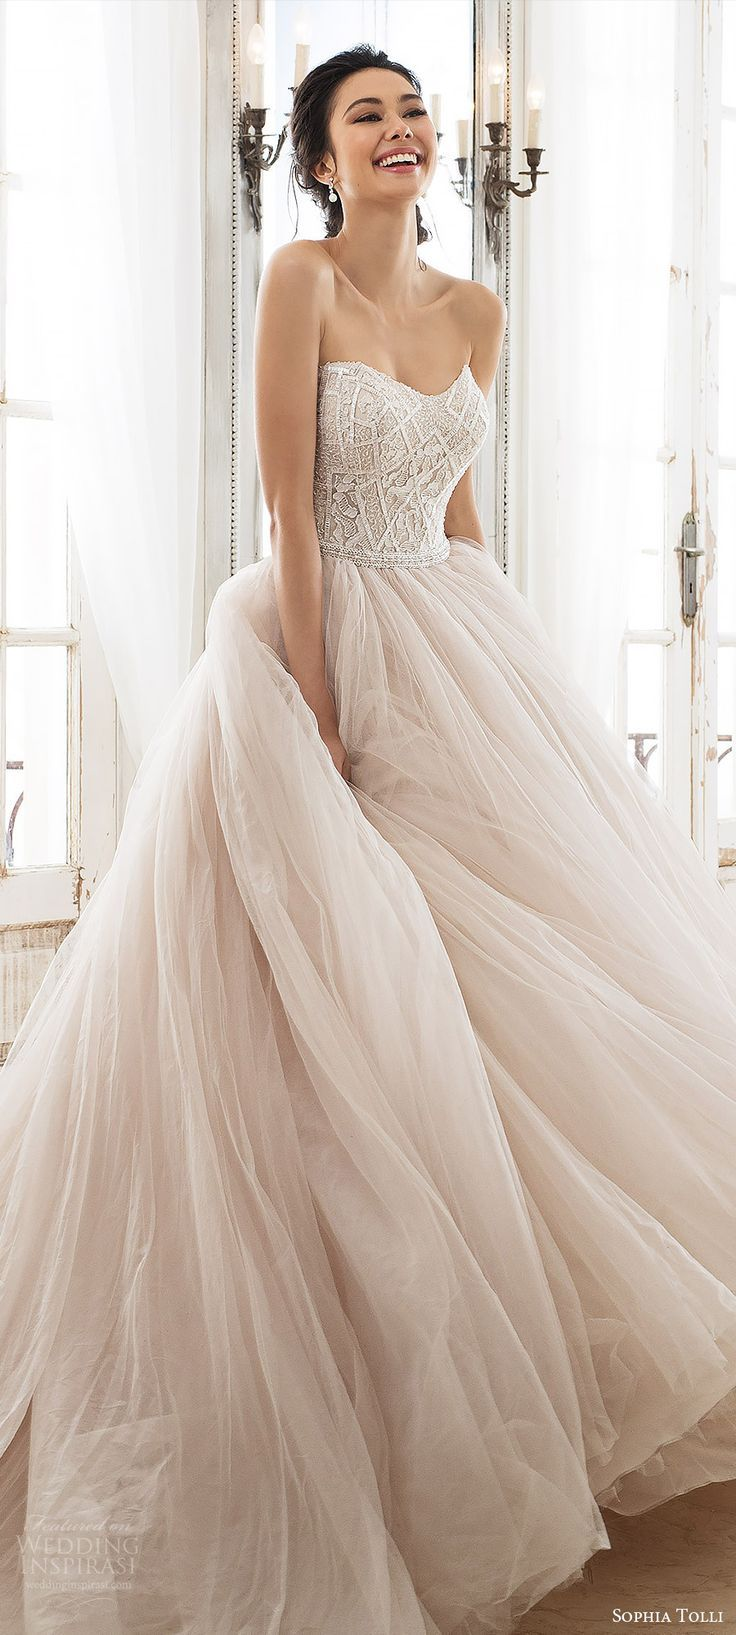 wedding dress trends to love part u silhouettes and sleeves